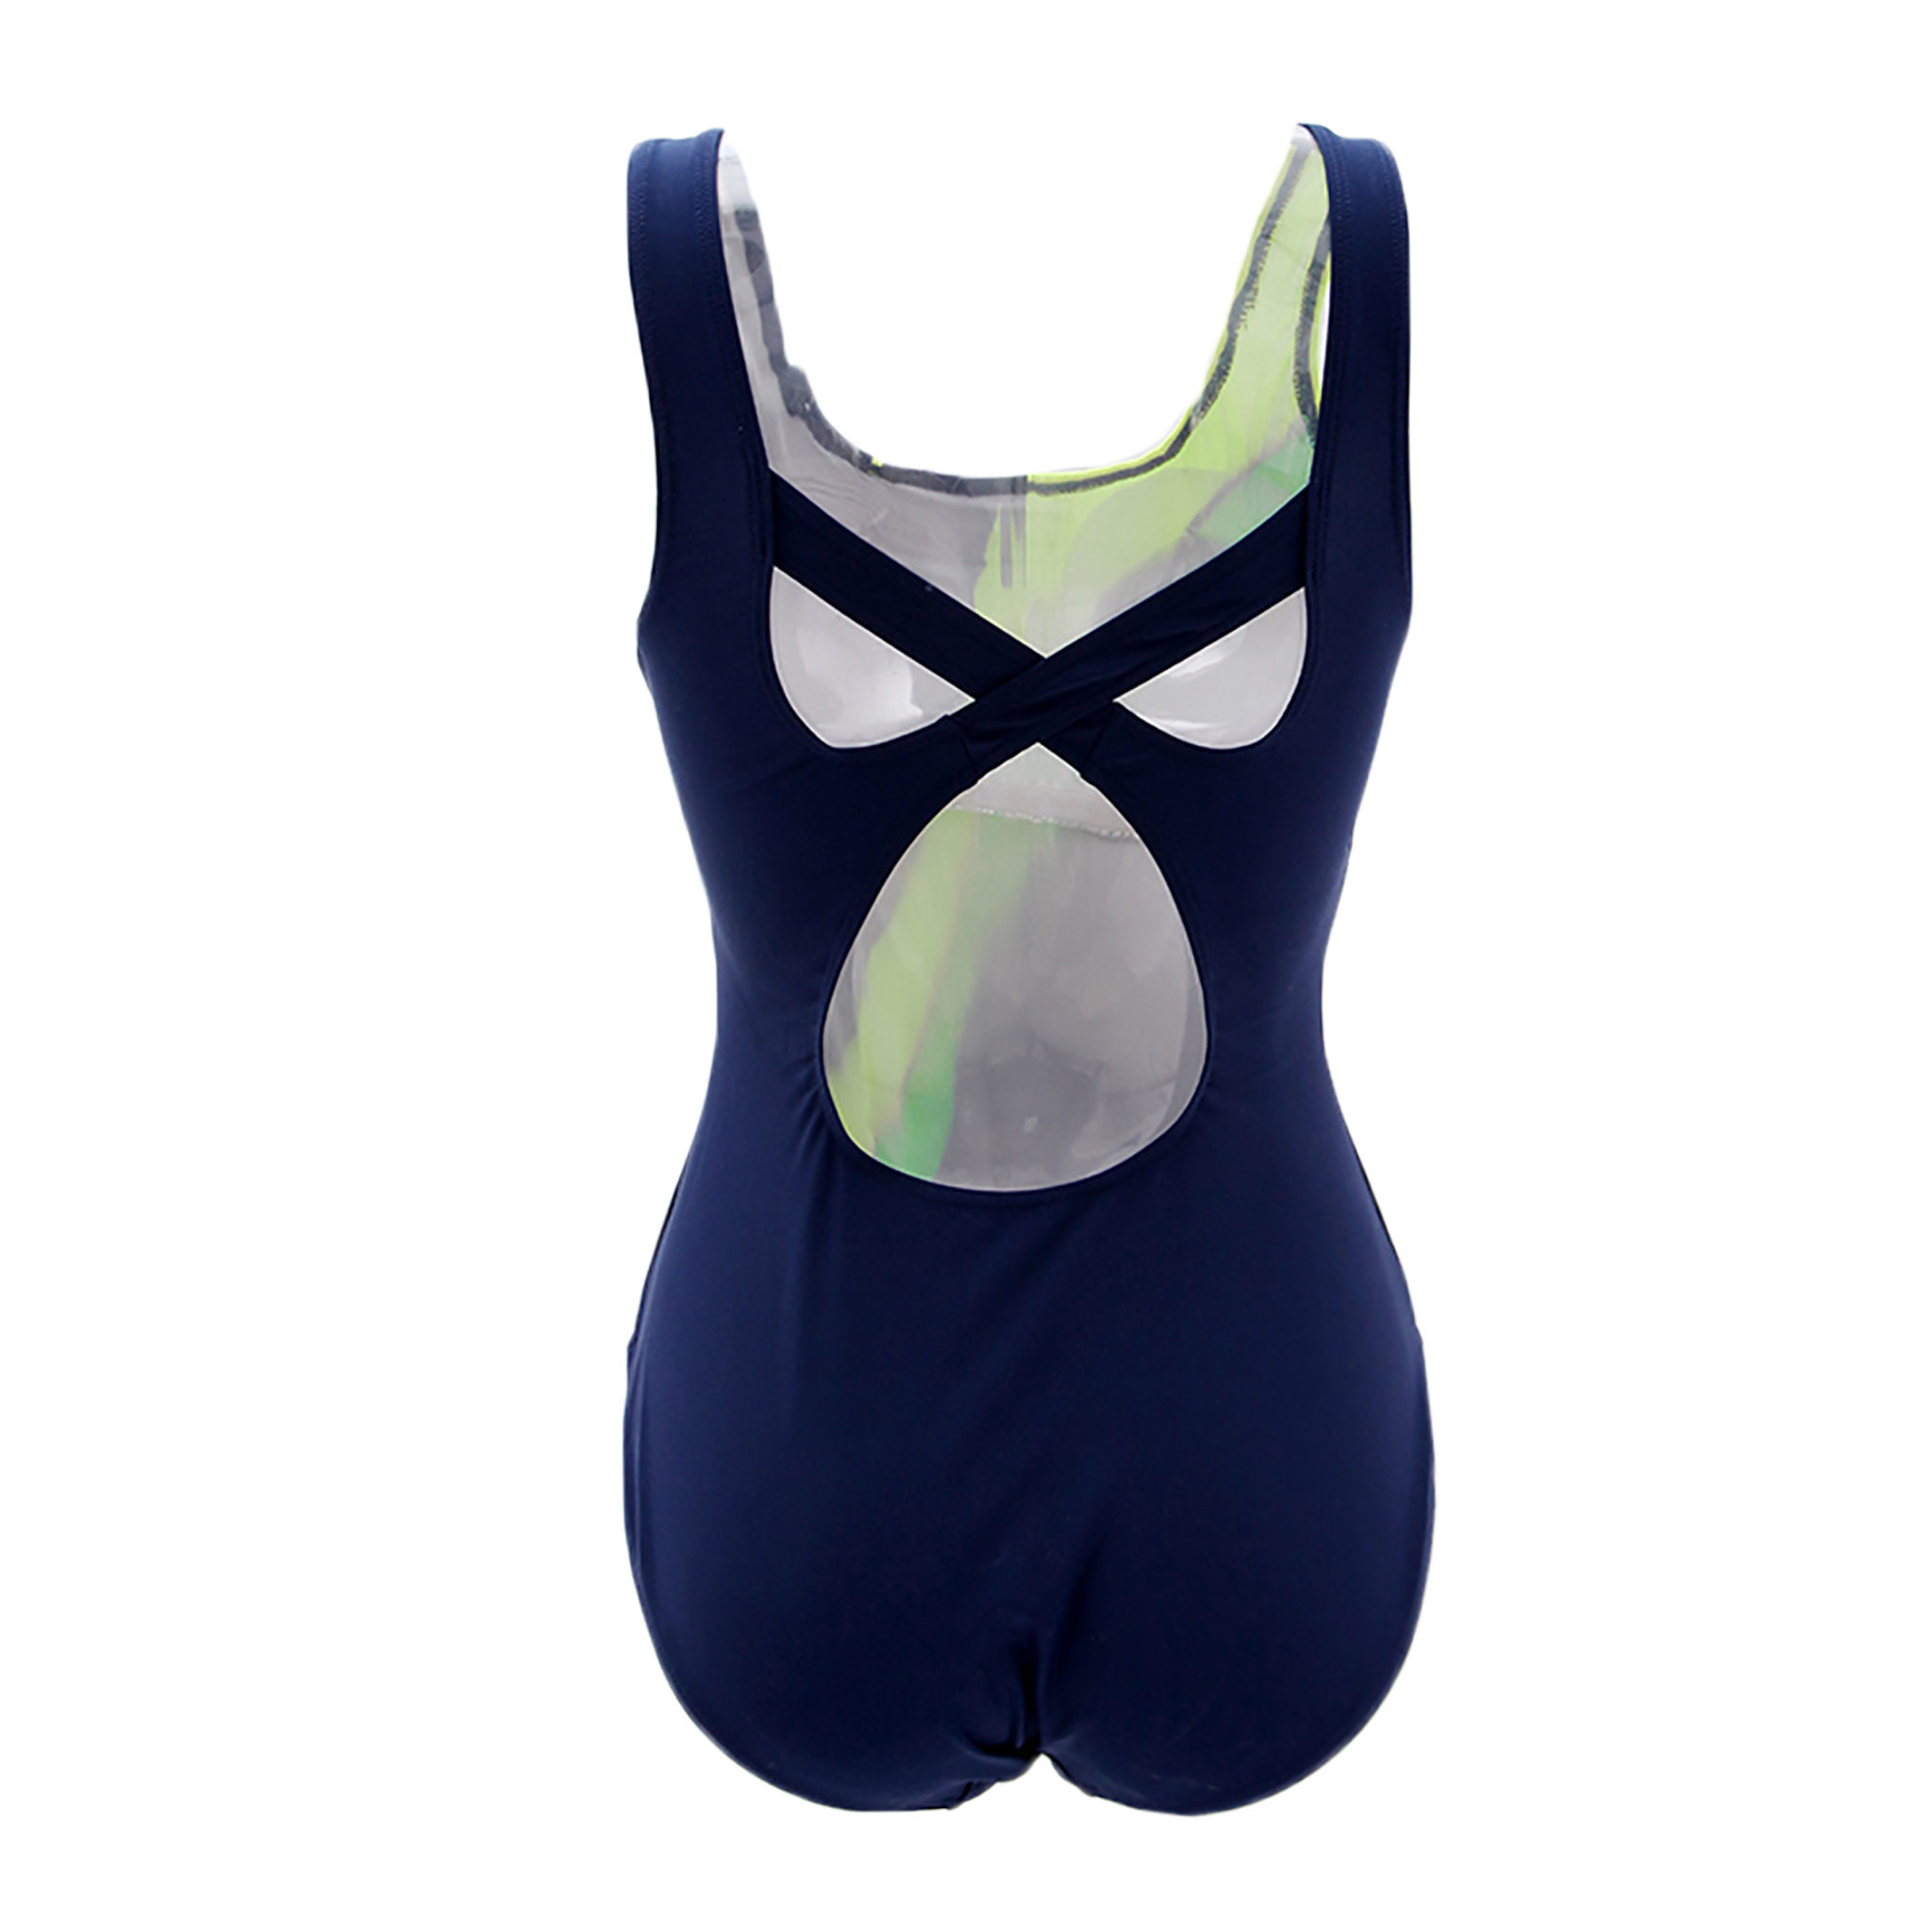 One-Piece Suits Professional Women High Leg Cut RacerbackTwill Printed Swimsuit Sport Training Racing Competition Swimwear(China (Mainland))